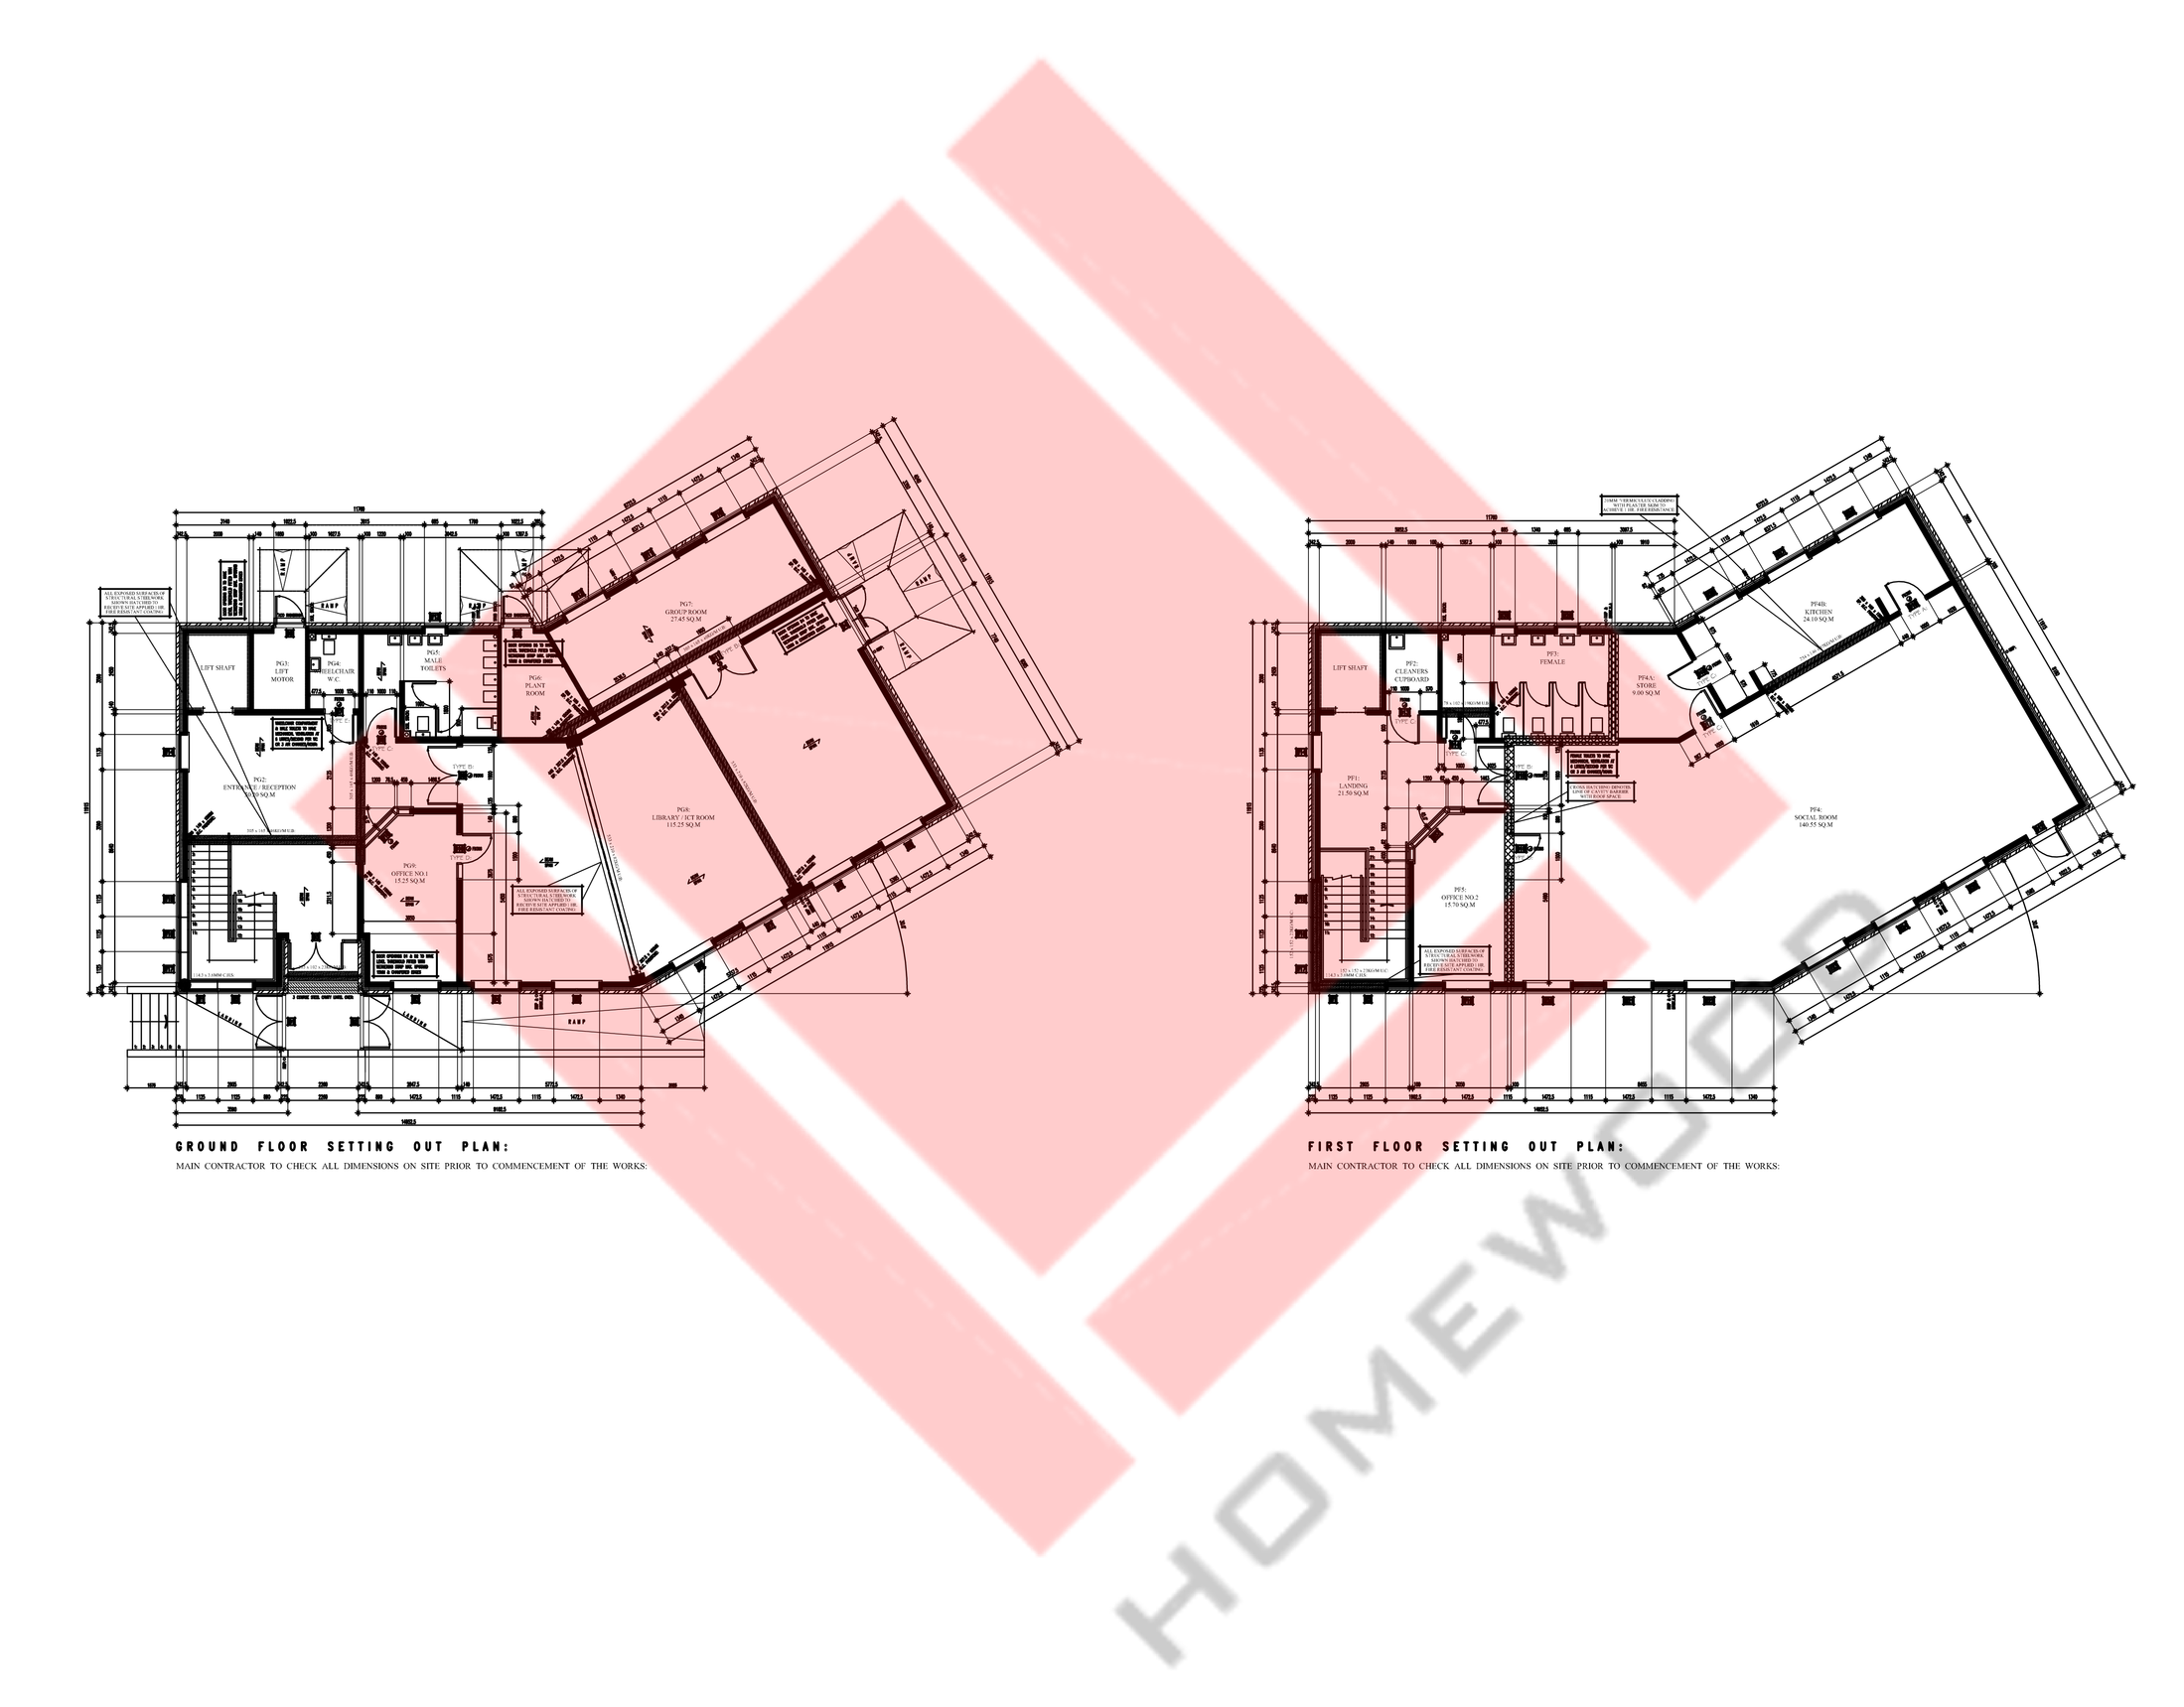 02 Floor Plans.Image.Marked_1.png